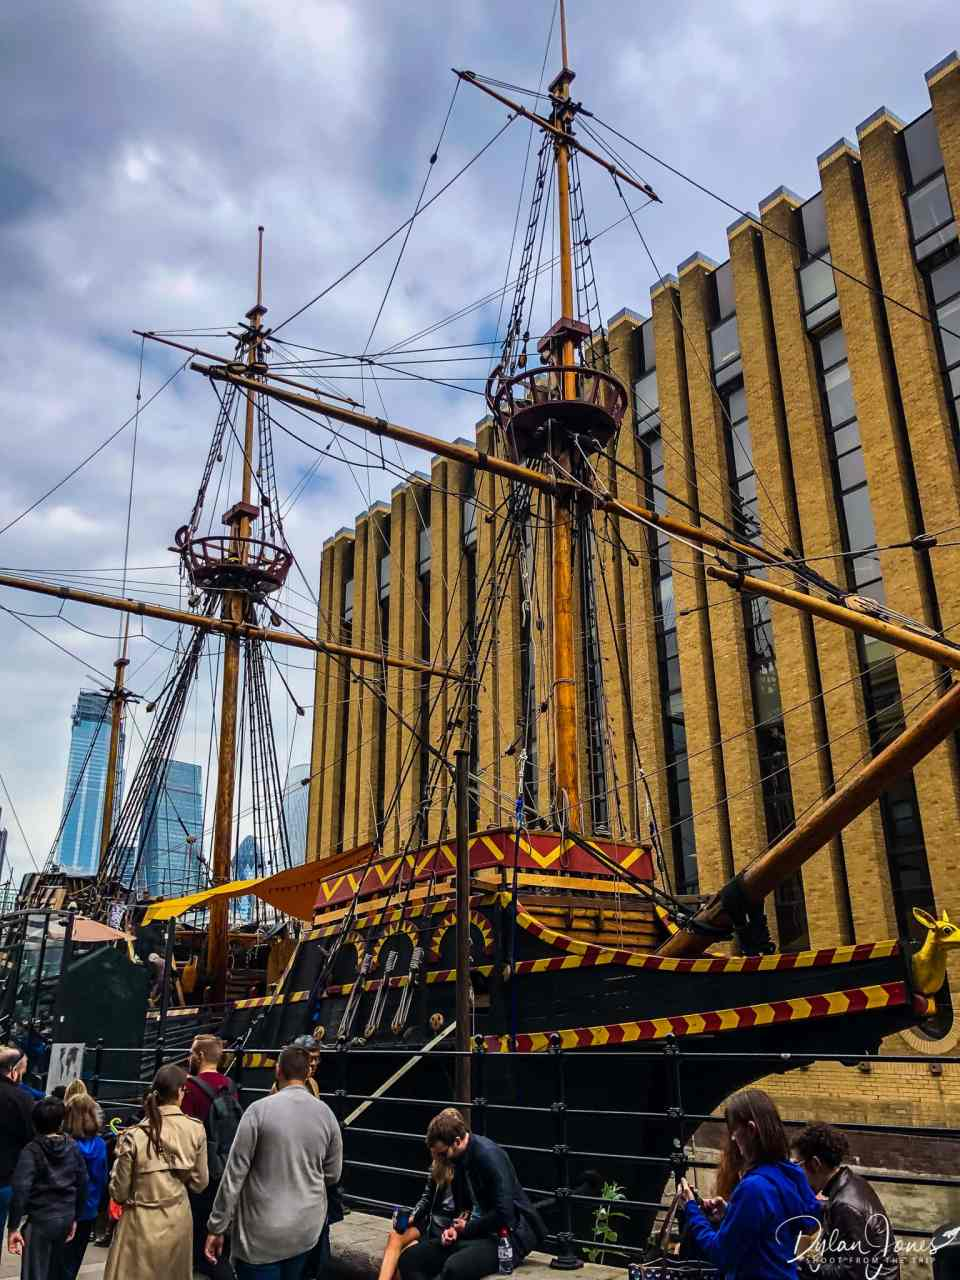 The Golden Hinde visitor attraction in the London Bridge area